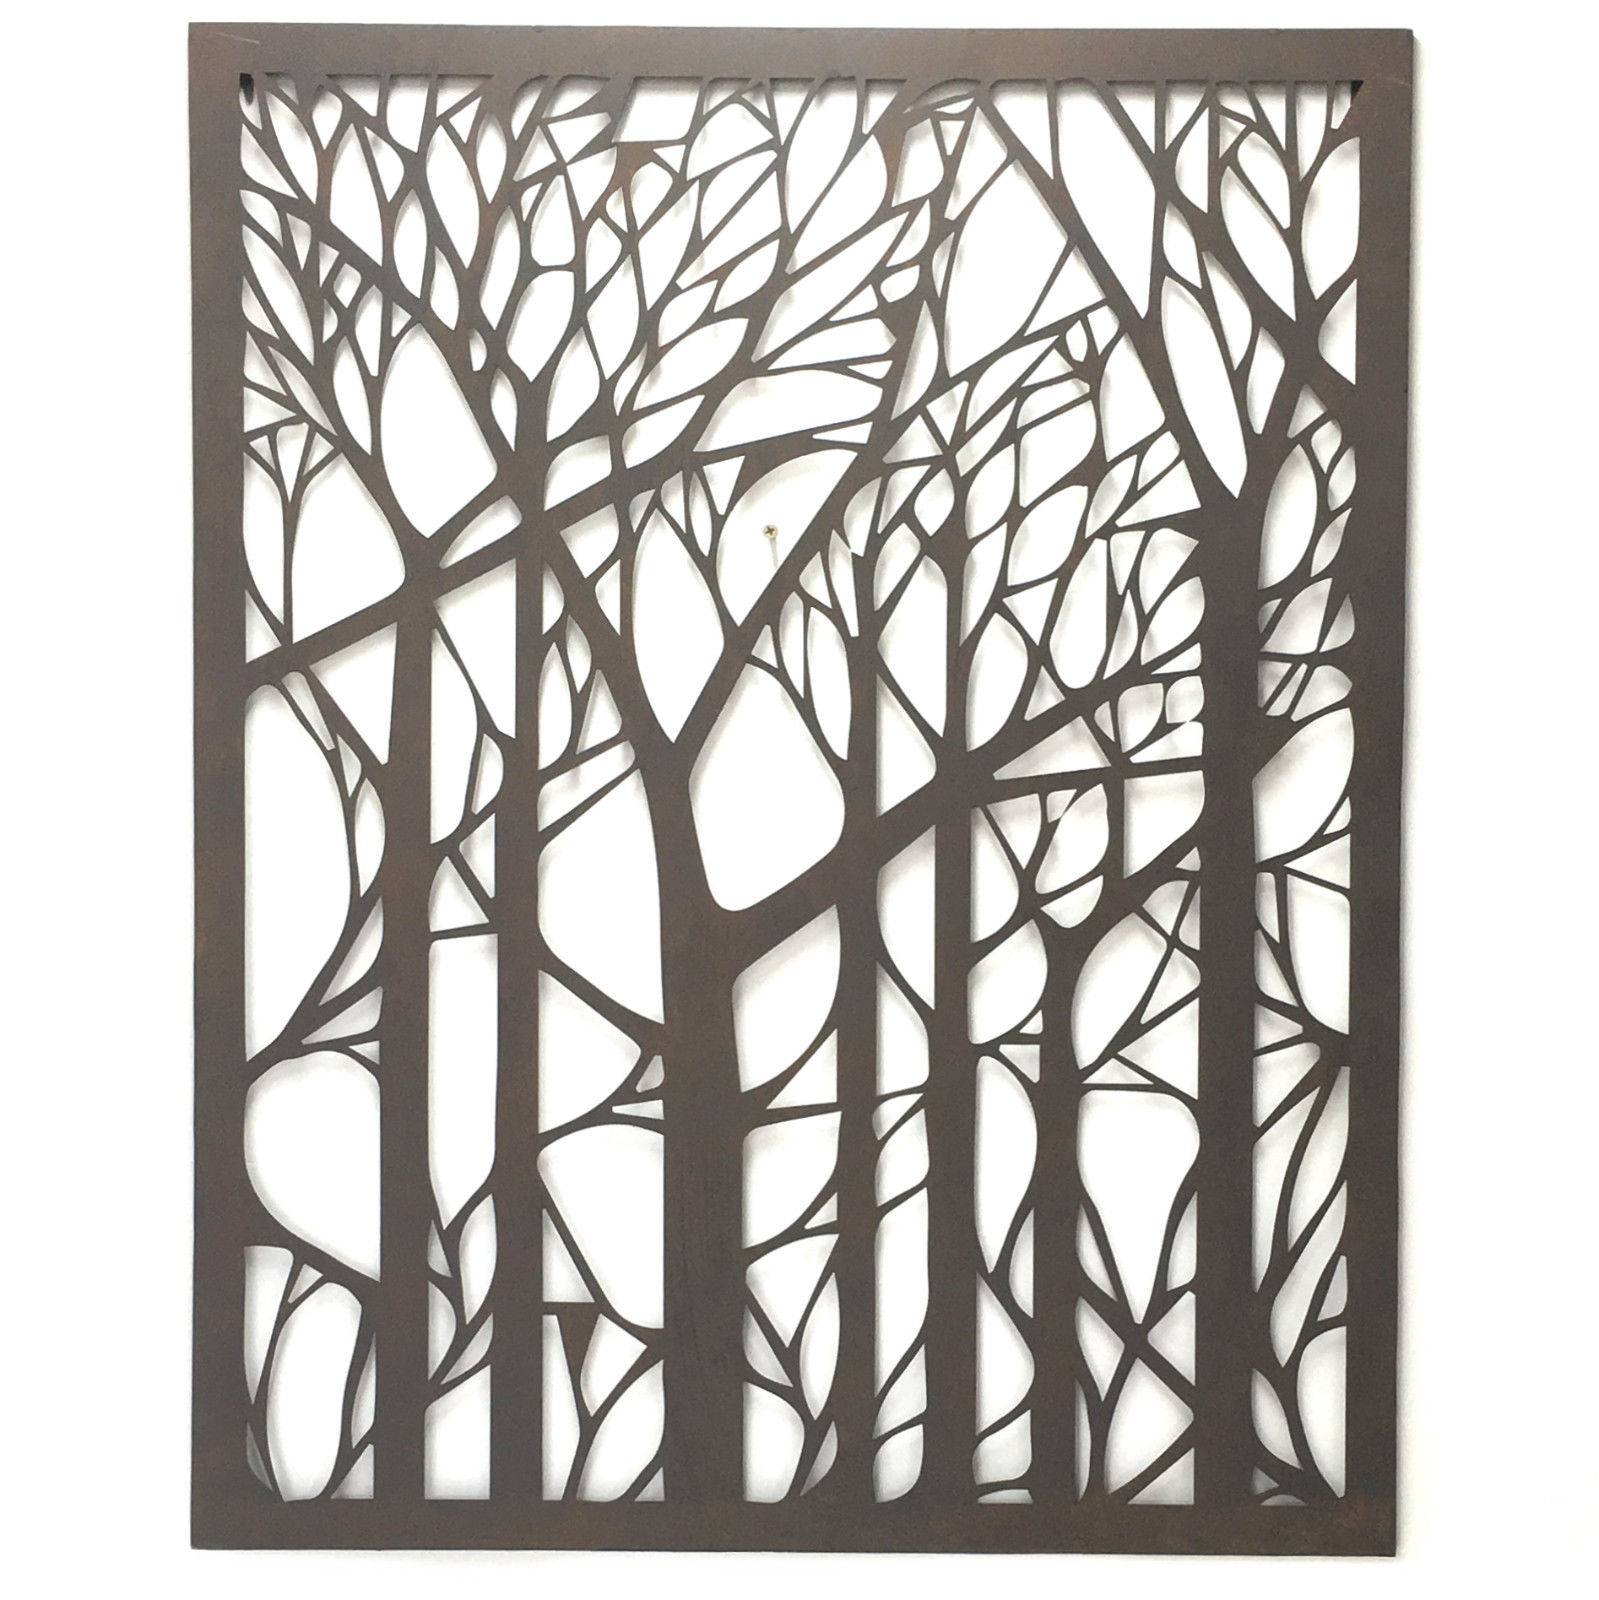 Wall Art Designs: Outdoor Wall Art Metal Tree Metal Wall Art In 2018 Metal Wall Art Trees And Branches (View 16 of 18)